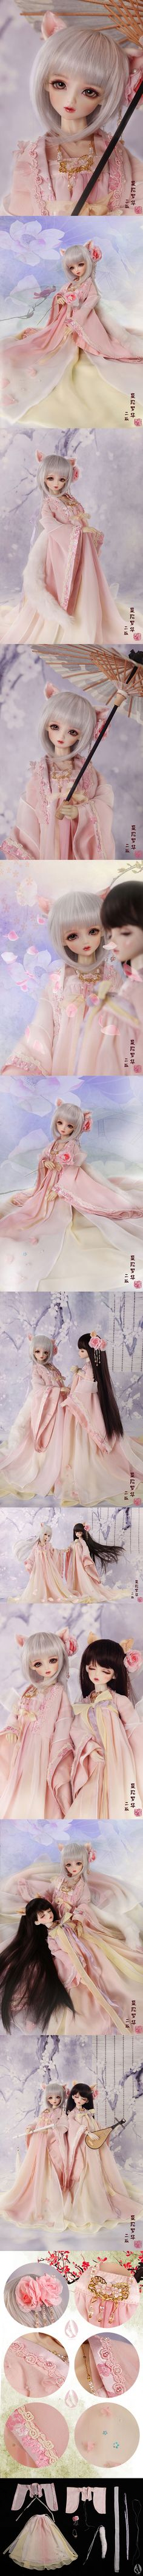 Bjd Clothes Girls 1/4 girl ancient Chinese clothing /mandara CL4150916 for MSD Ball-jointed Doll_MSD_MSD_CLOTHING_Ball Jointed Dolls (BJD) company-Legenddoll